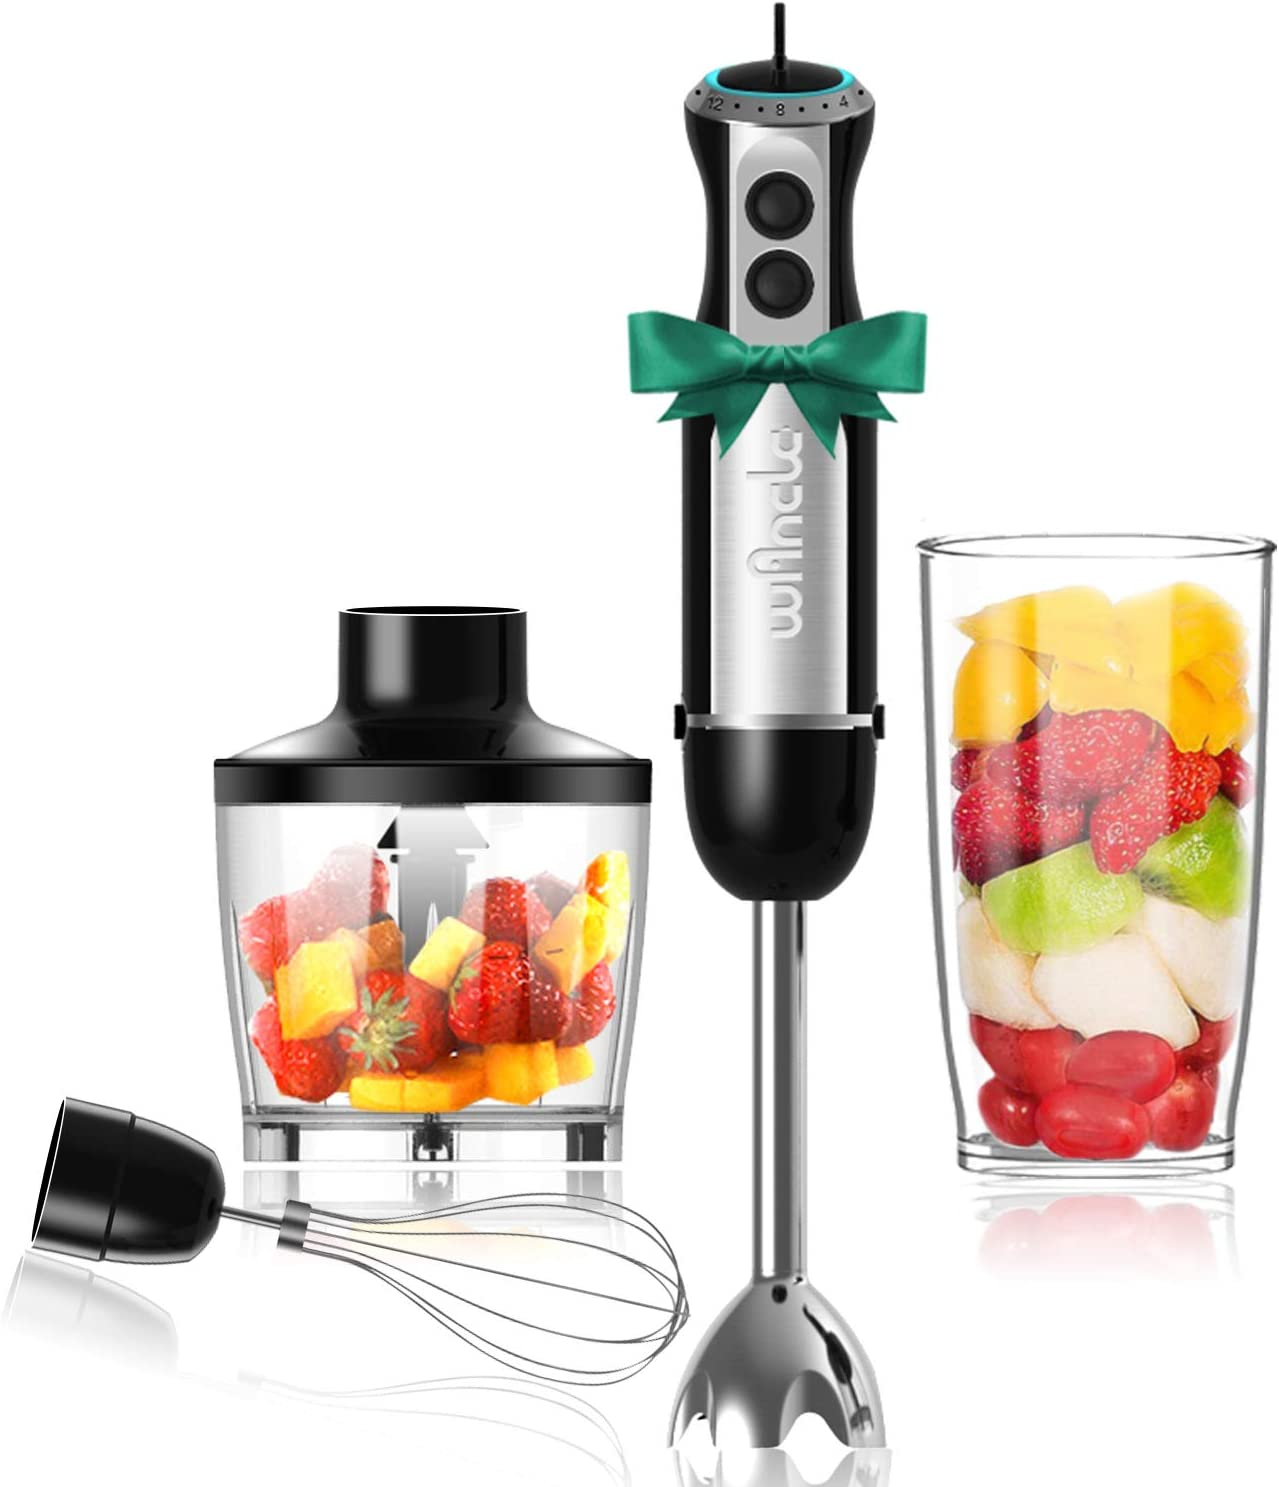 Wancle Immersion Hand Blender Set Stick Blender 16-Speed 4-in-1 With 500ml Food Grinder, 600ml Container, Egg Whisk, Puree Infant Food, Smoothies, Sauces and Soups , 304 Stainless Steel , BPA-Free Black